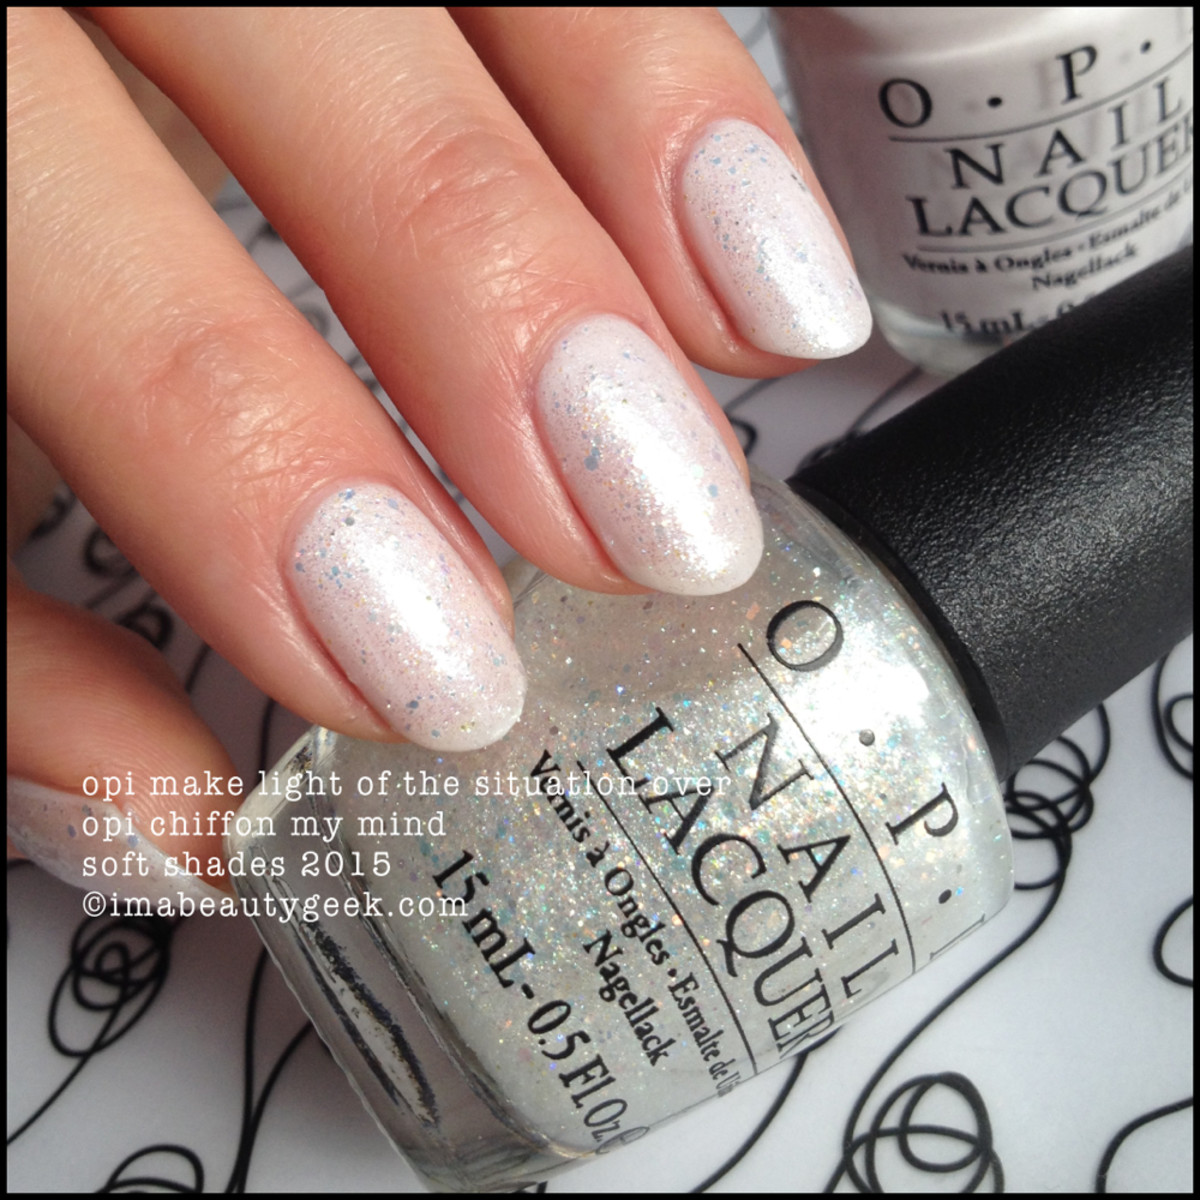 OPI Make Light of the Situation Soft Shades